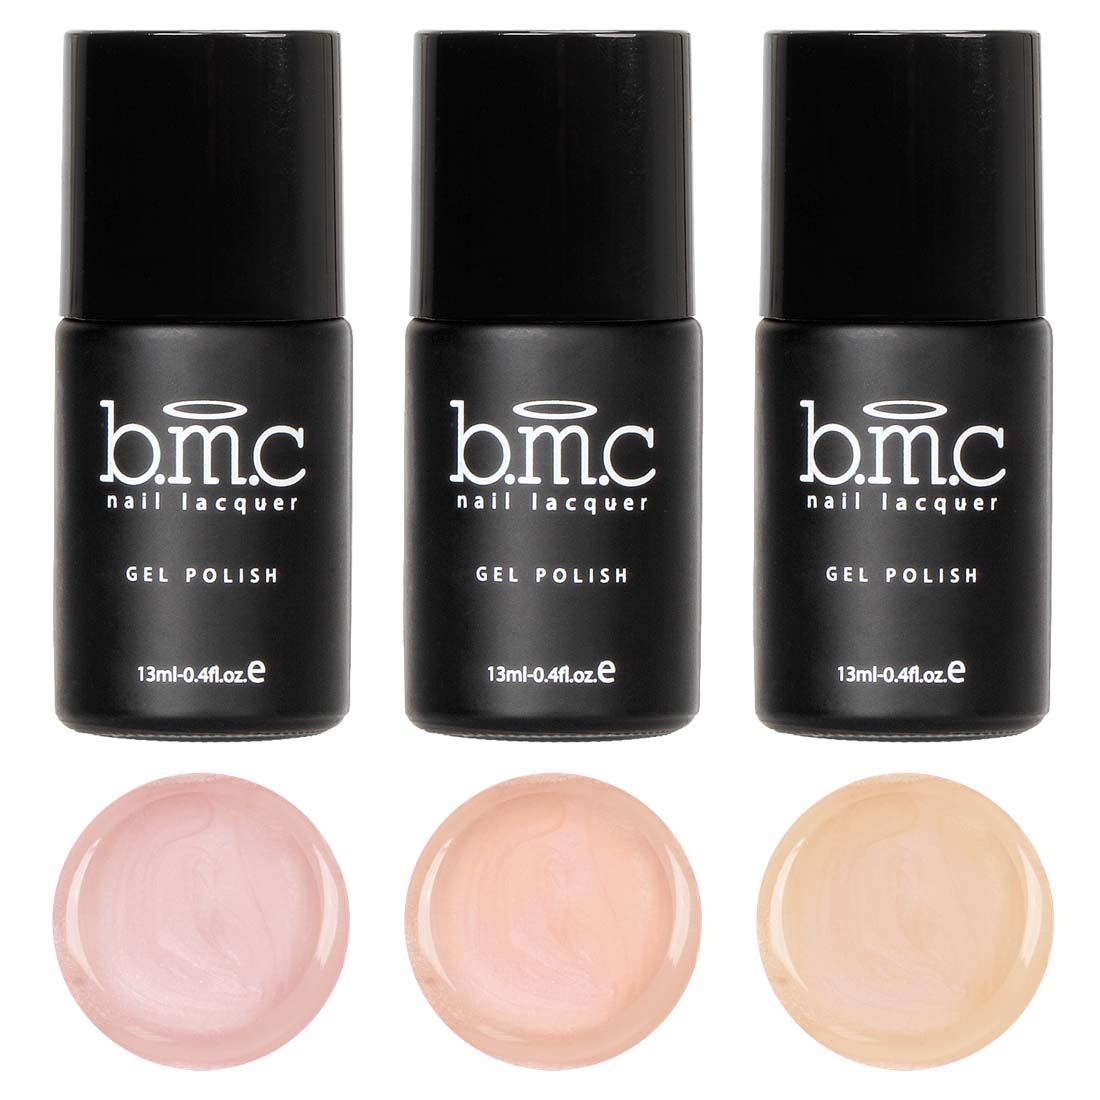 BMC Cream Finished Nude Colored Gel Lacquer Polishes - Au Naturel Collection